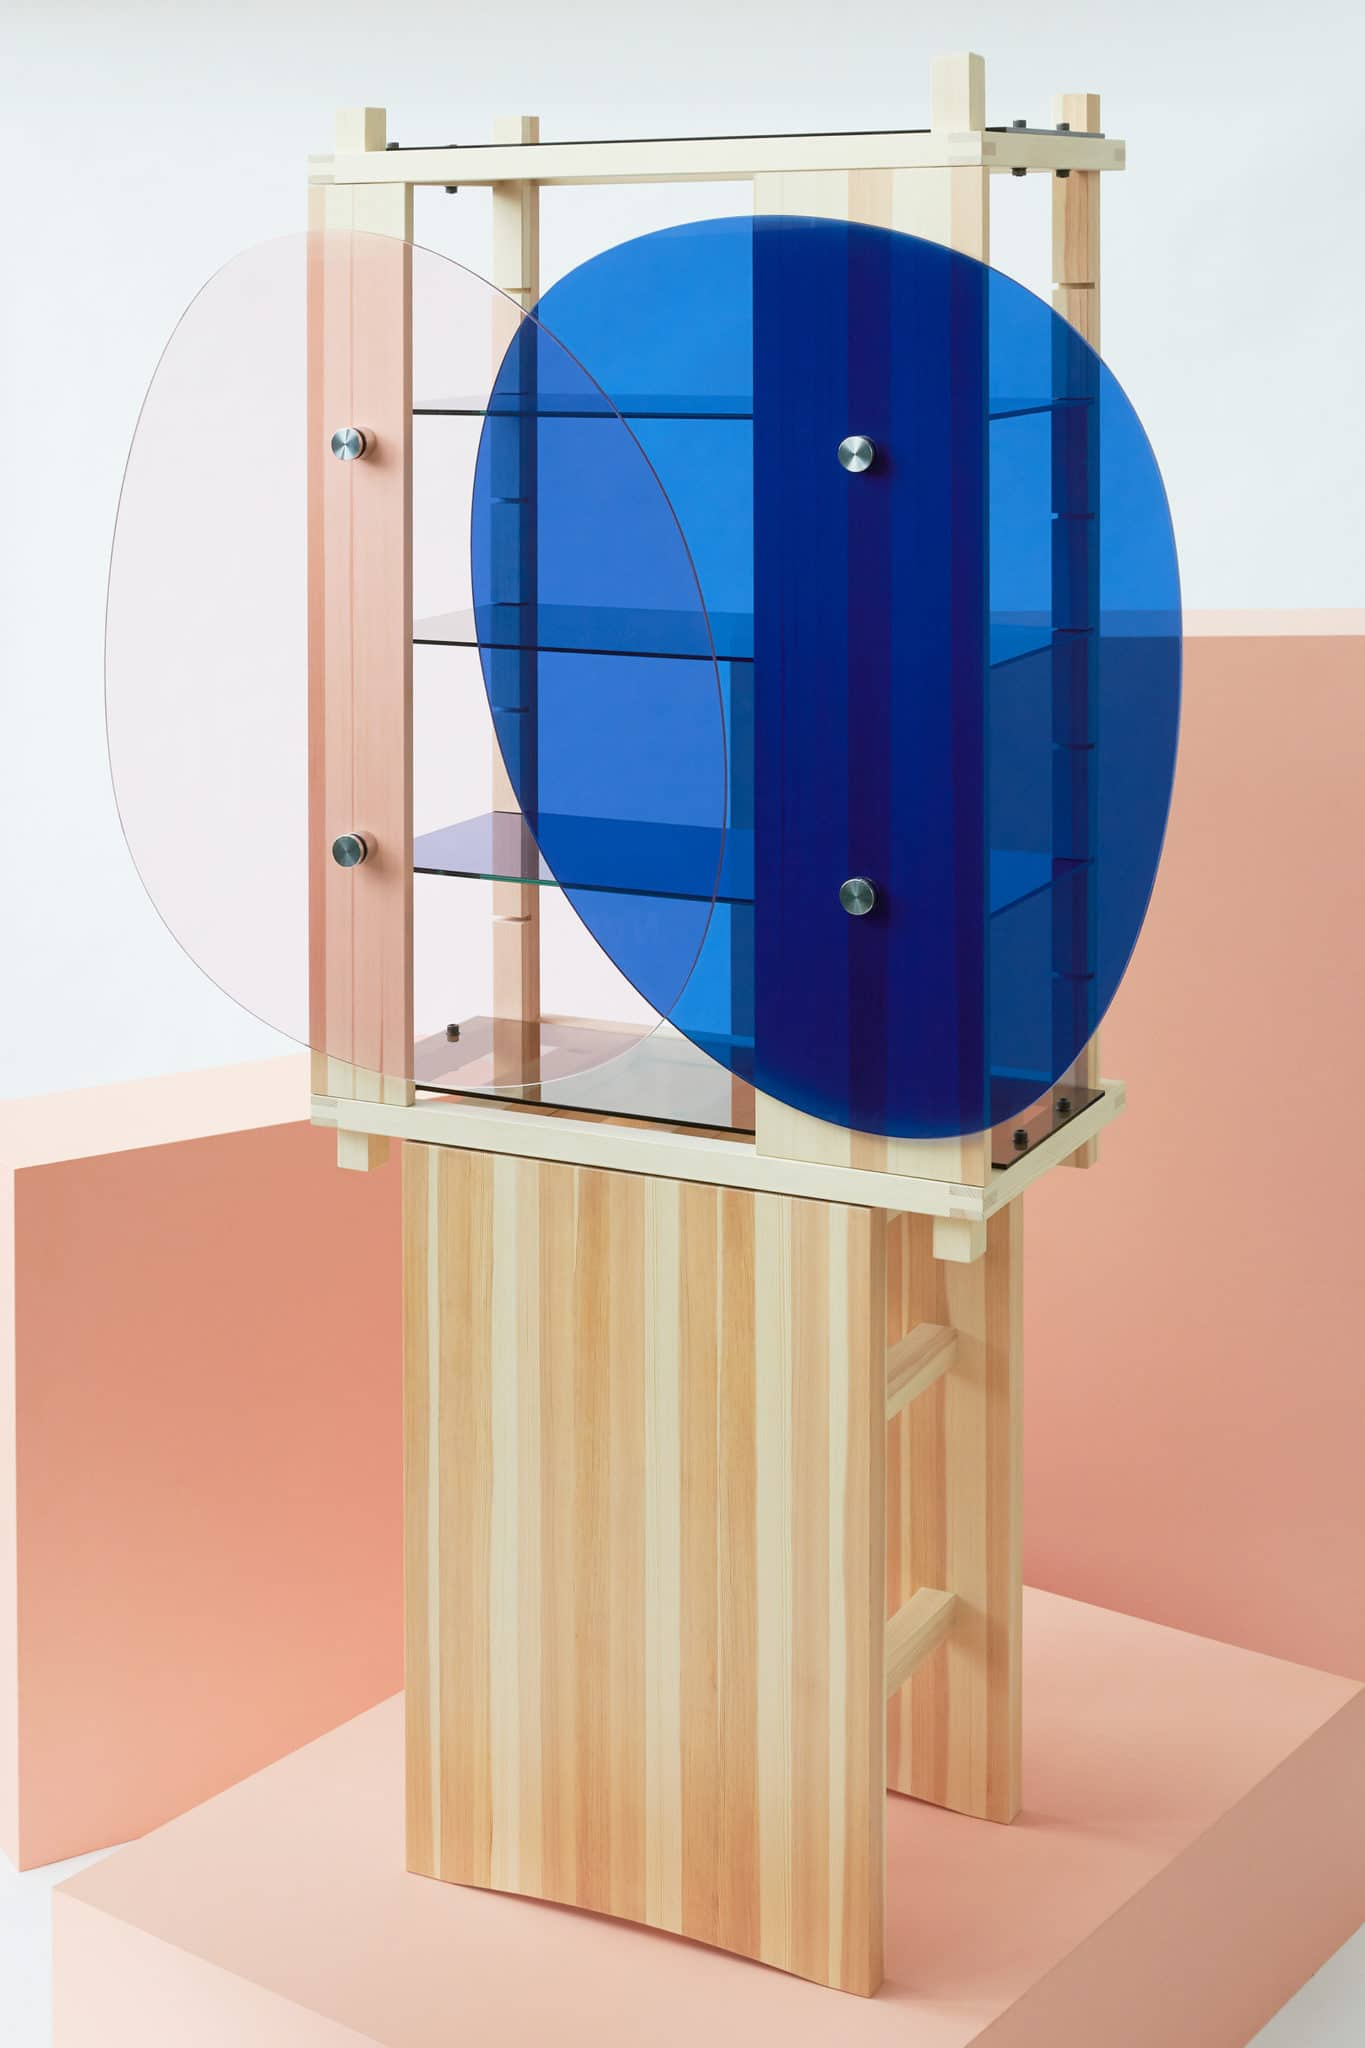 Amorfo cabinet by Luis Rodriguez and Oscar Wall